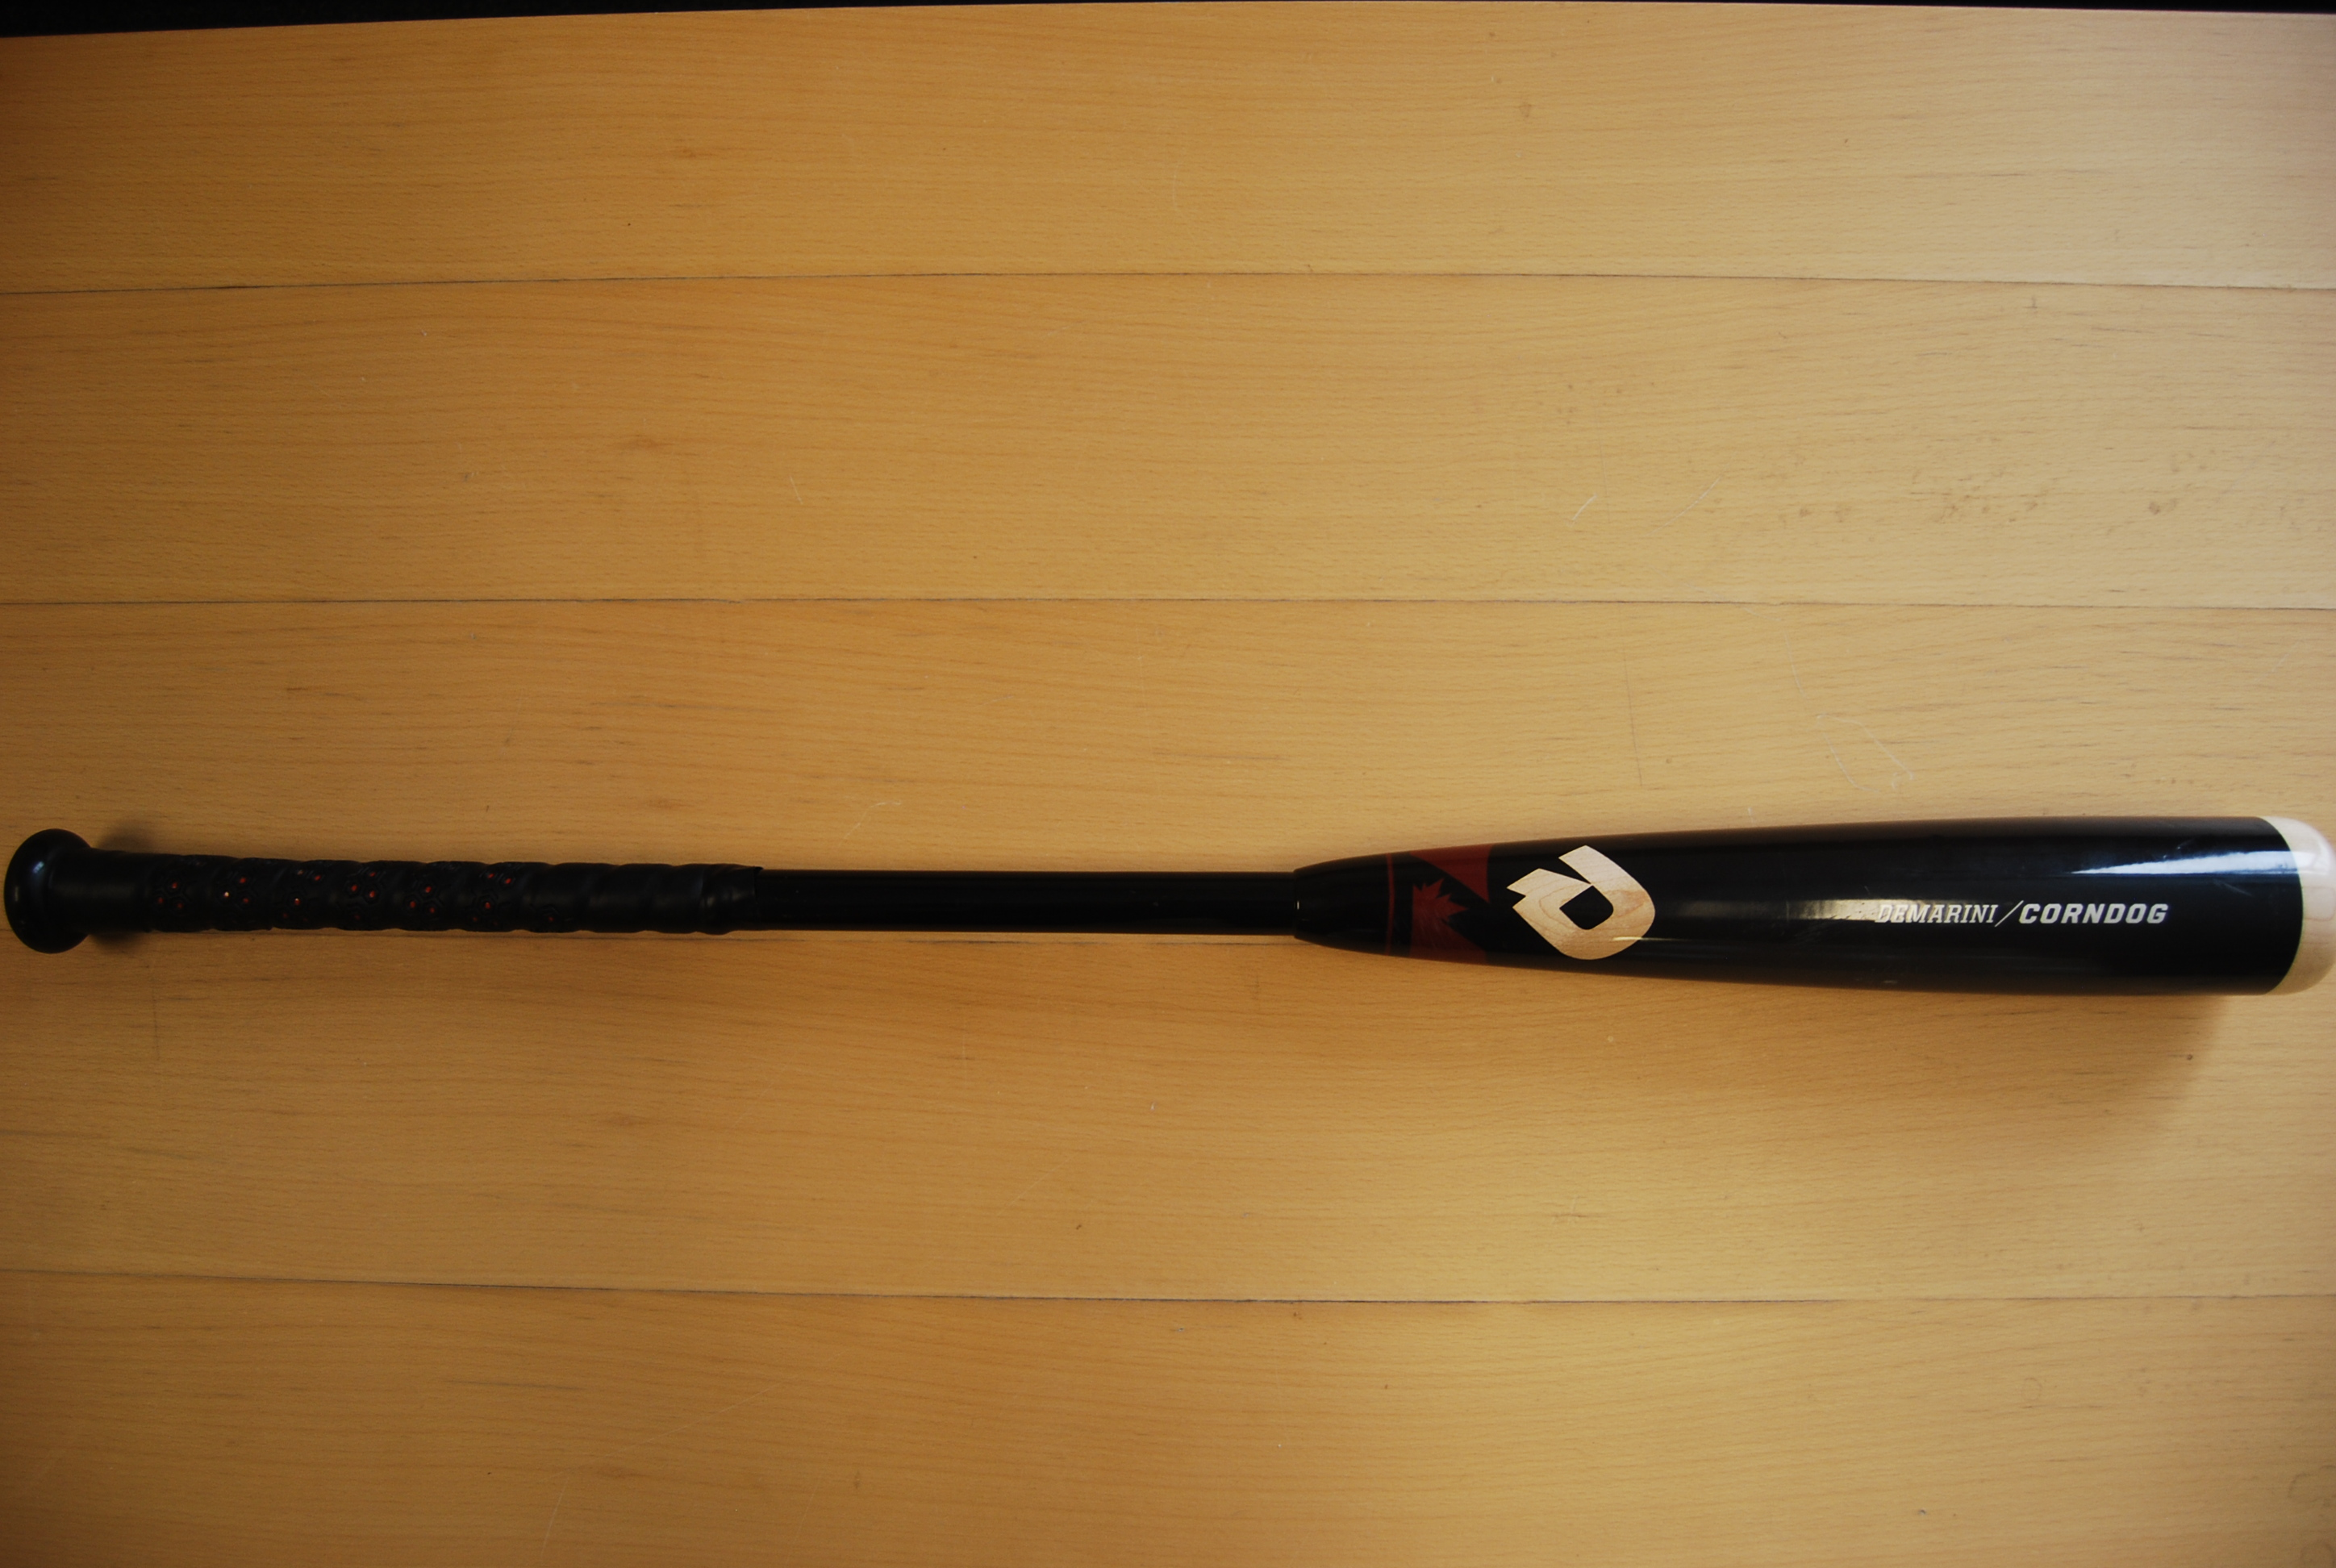 Details about GRS-205 DeMarini WTDXCDA 32/29 Wood Composite Corndog BBCOR  Baseball Bat Used